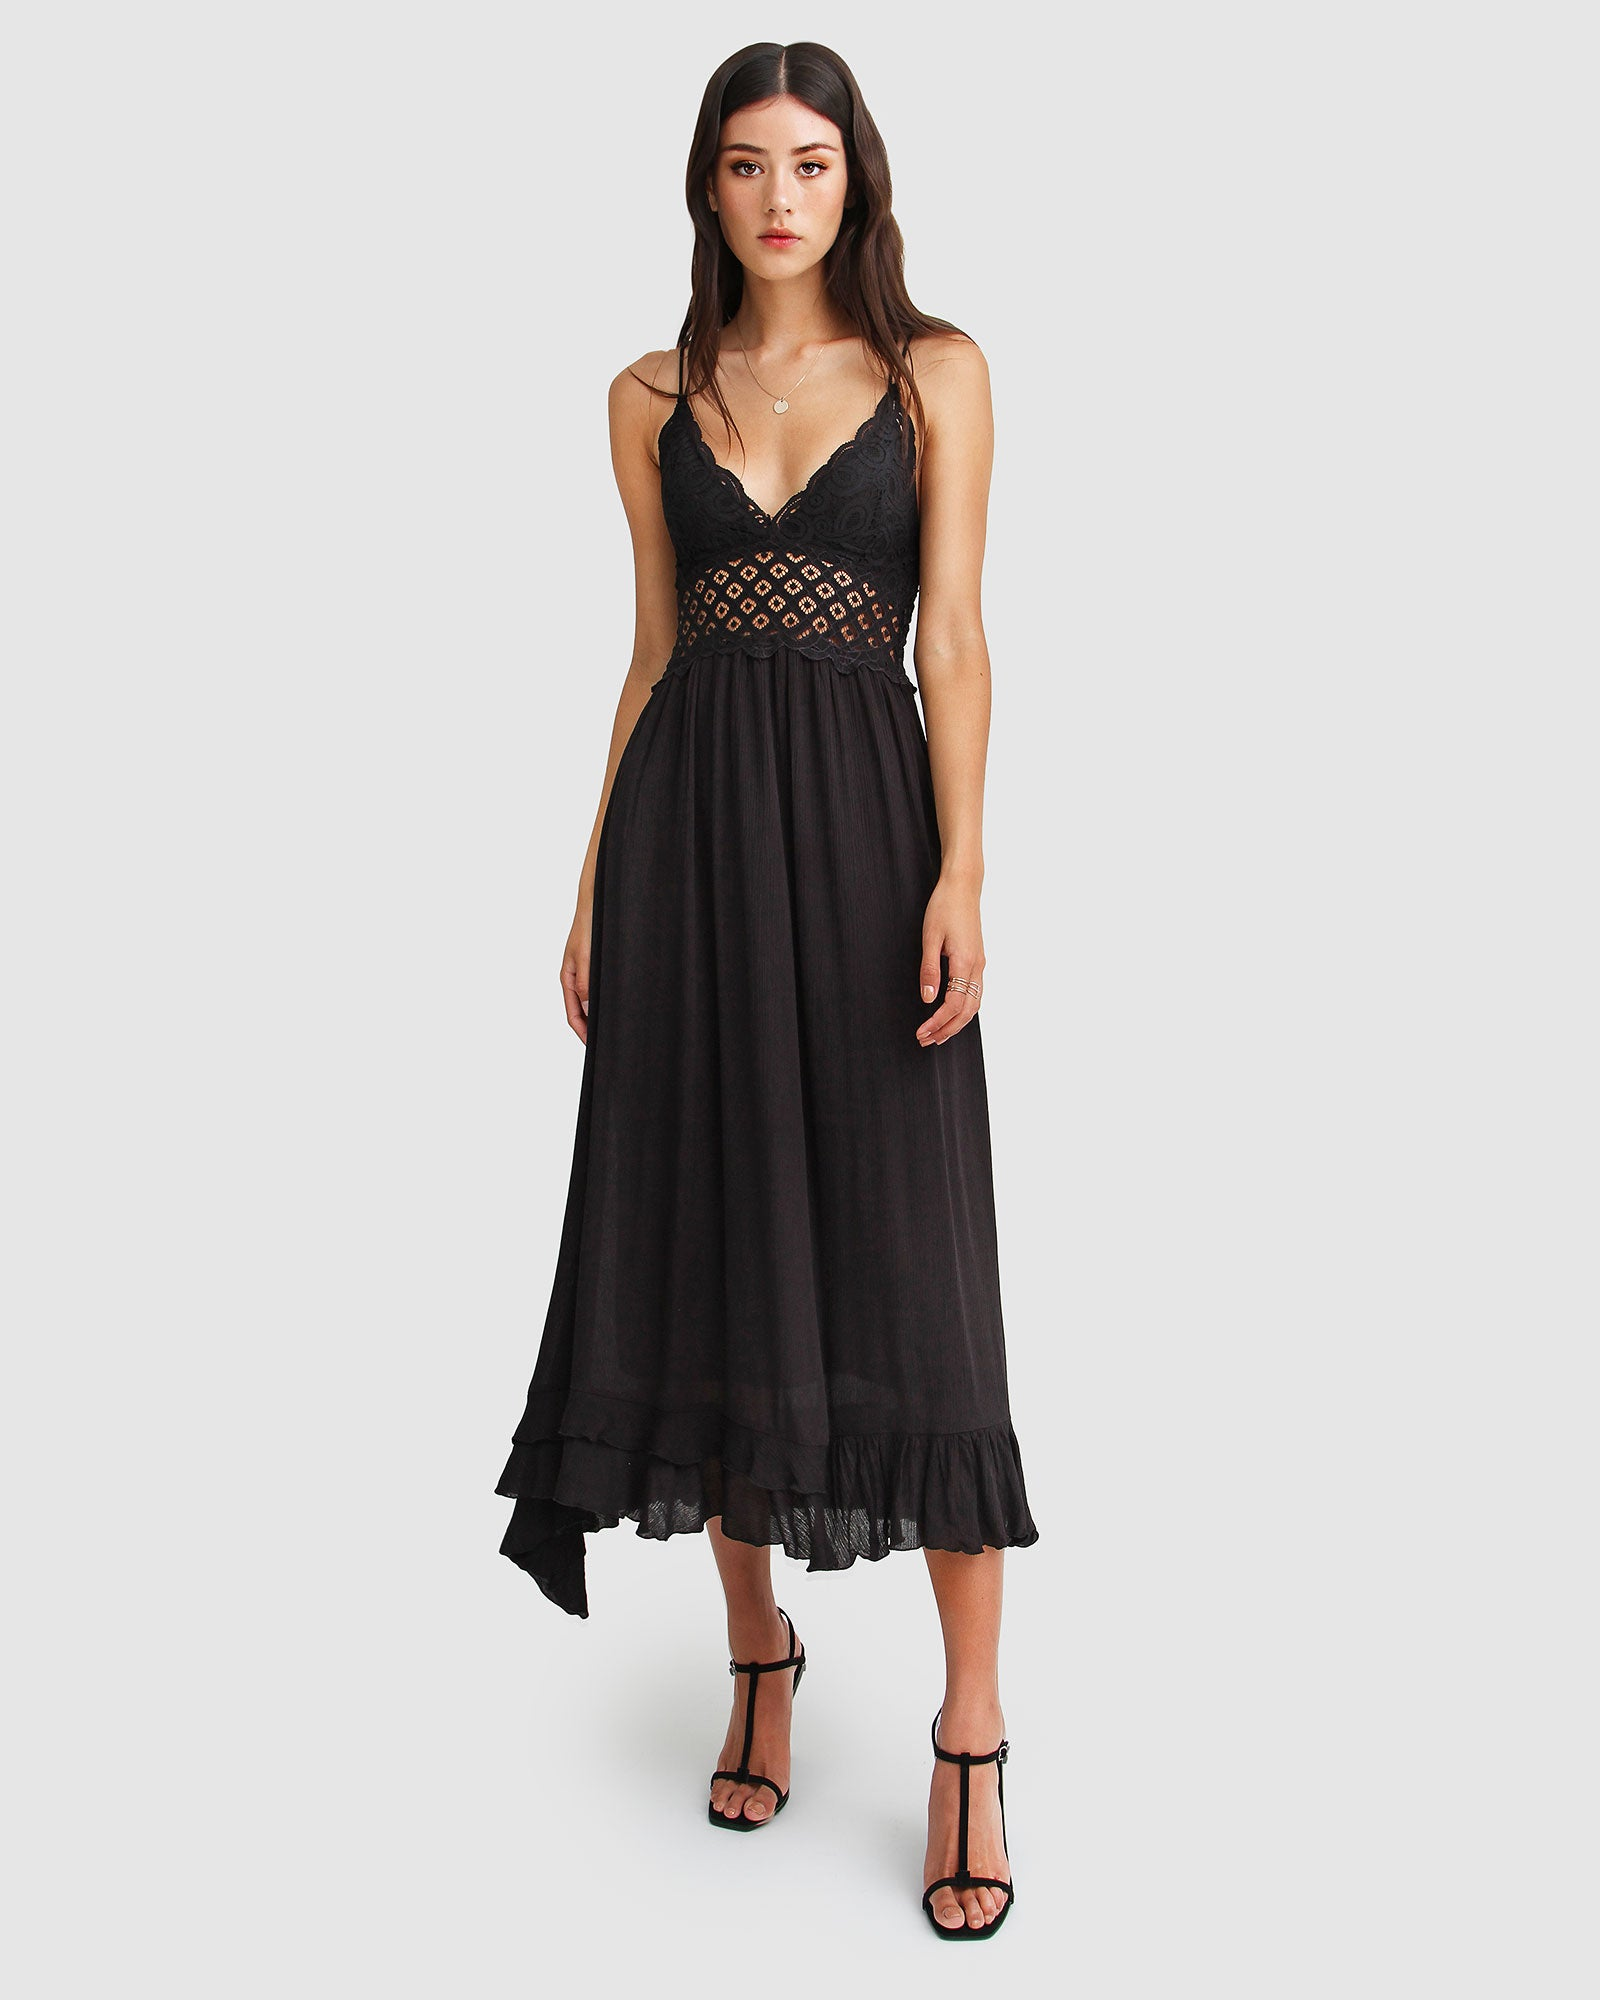 Lost In You Maxi Slip Dress - Black